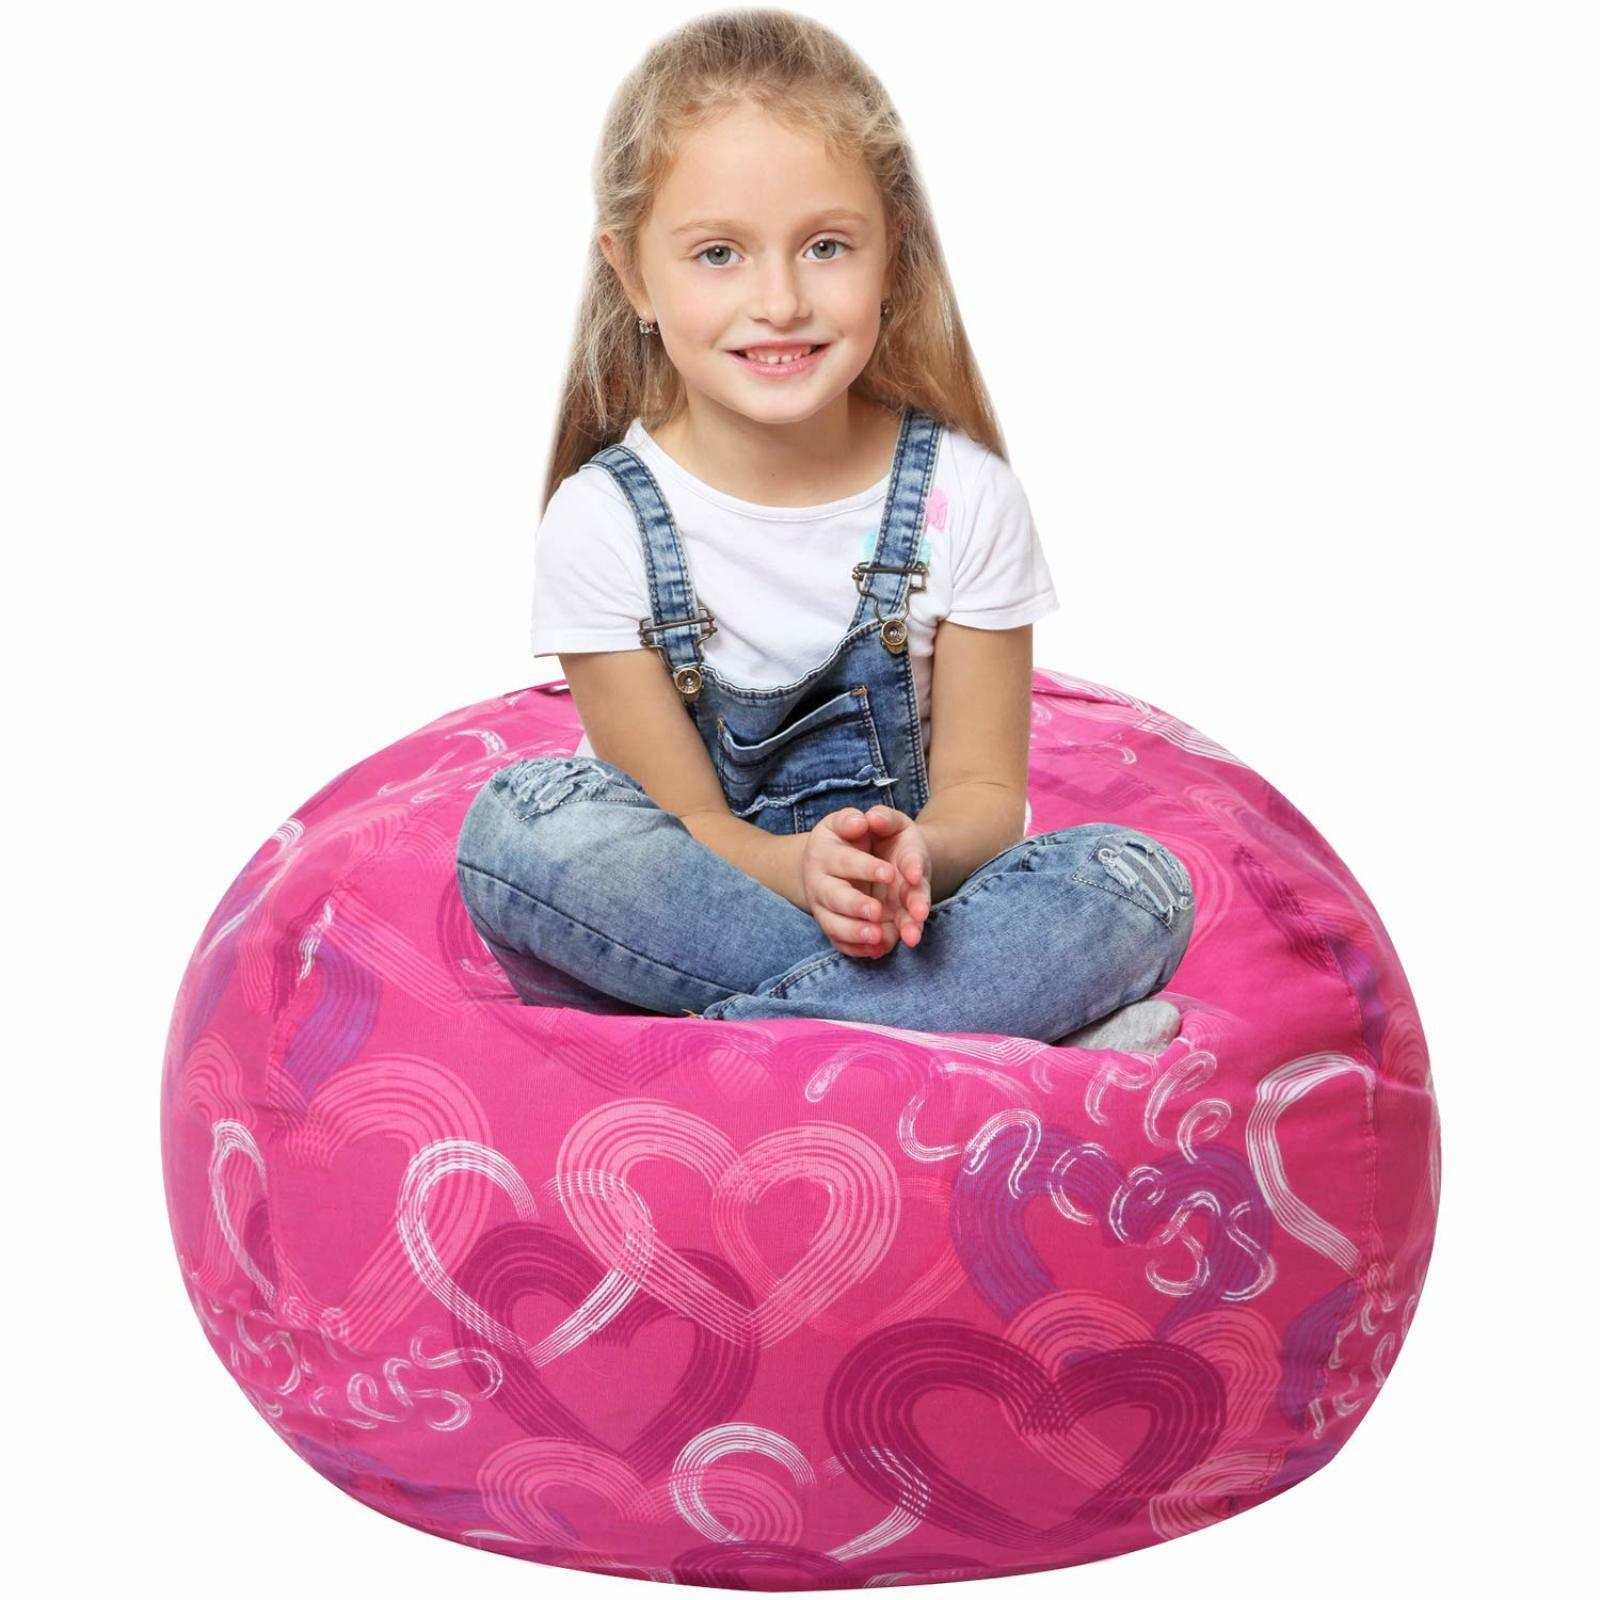 Stuffed Animal Storage Bean Bag Chairs Kids Girls Plush Toys